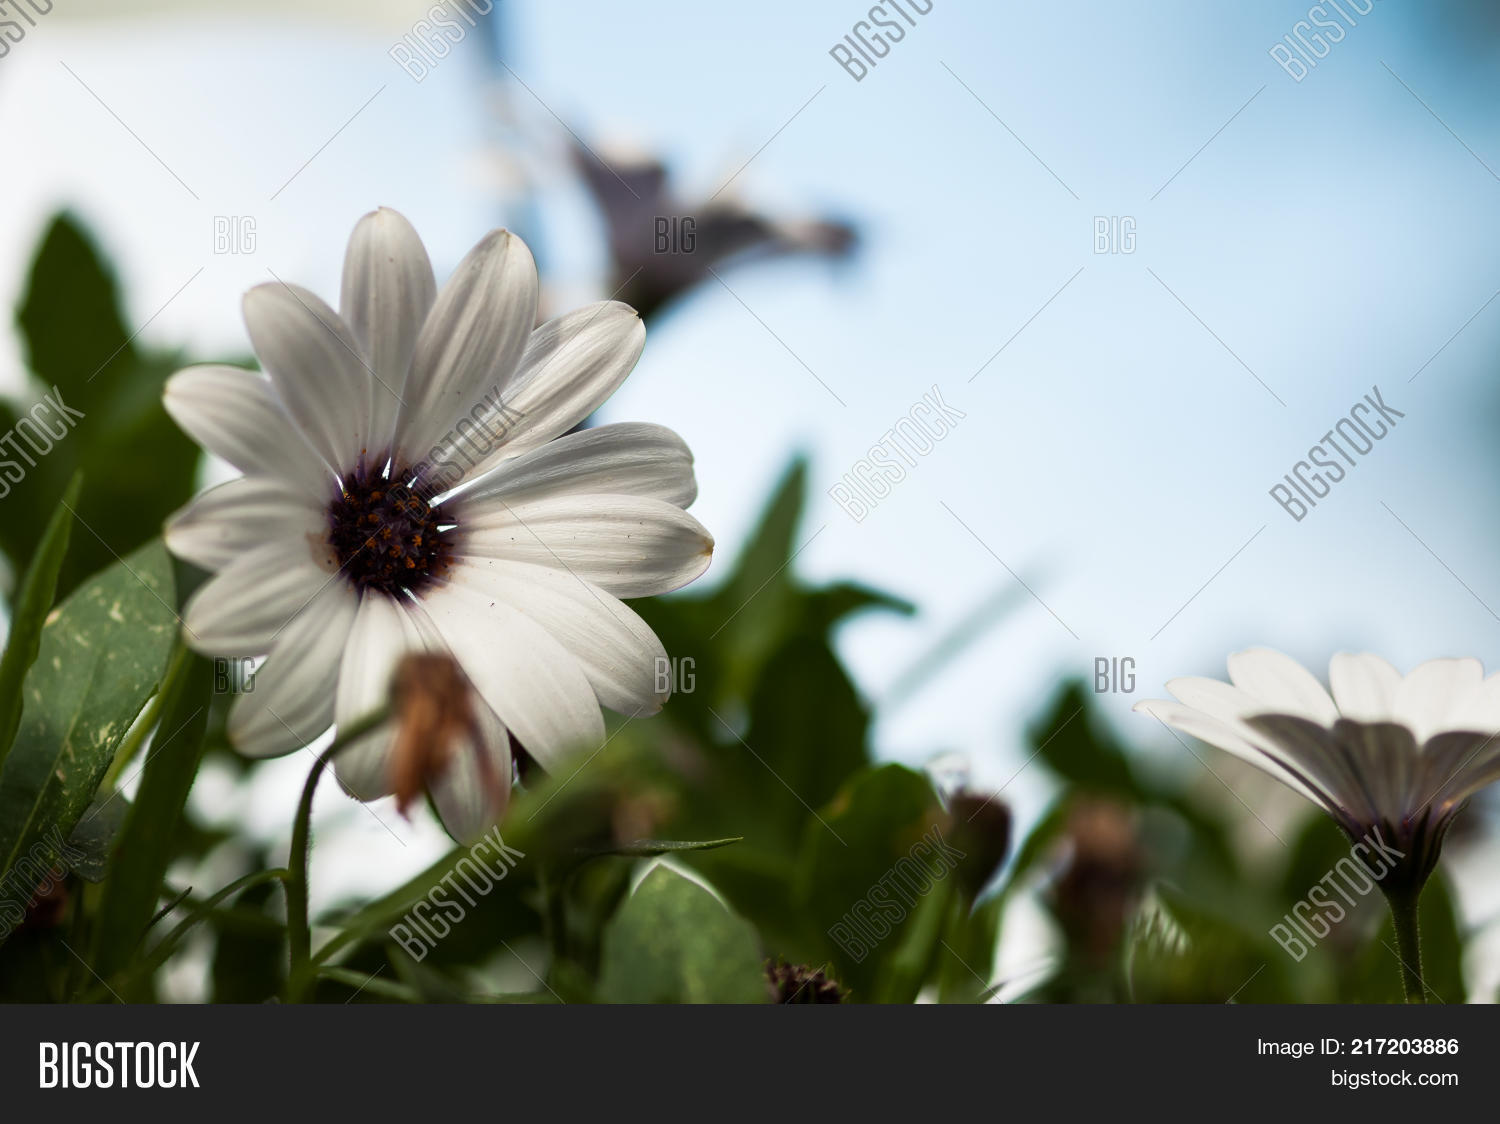 White african daisy image photo free trial bigstock a white african daisy flower with a purple center rests among green leaves with a blue izmirmasajfo